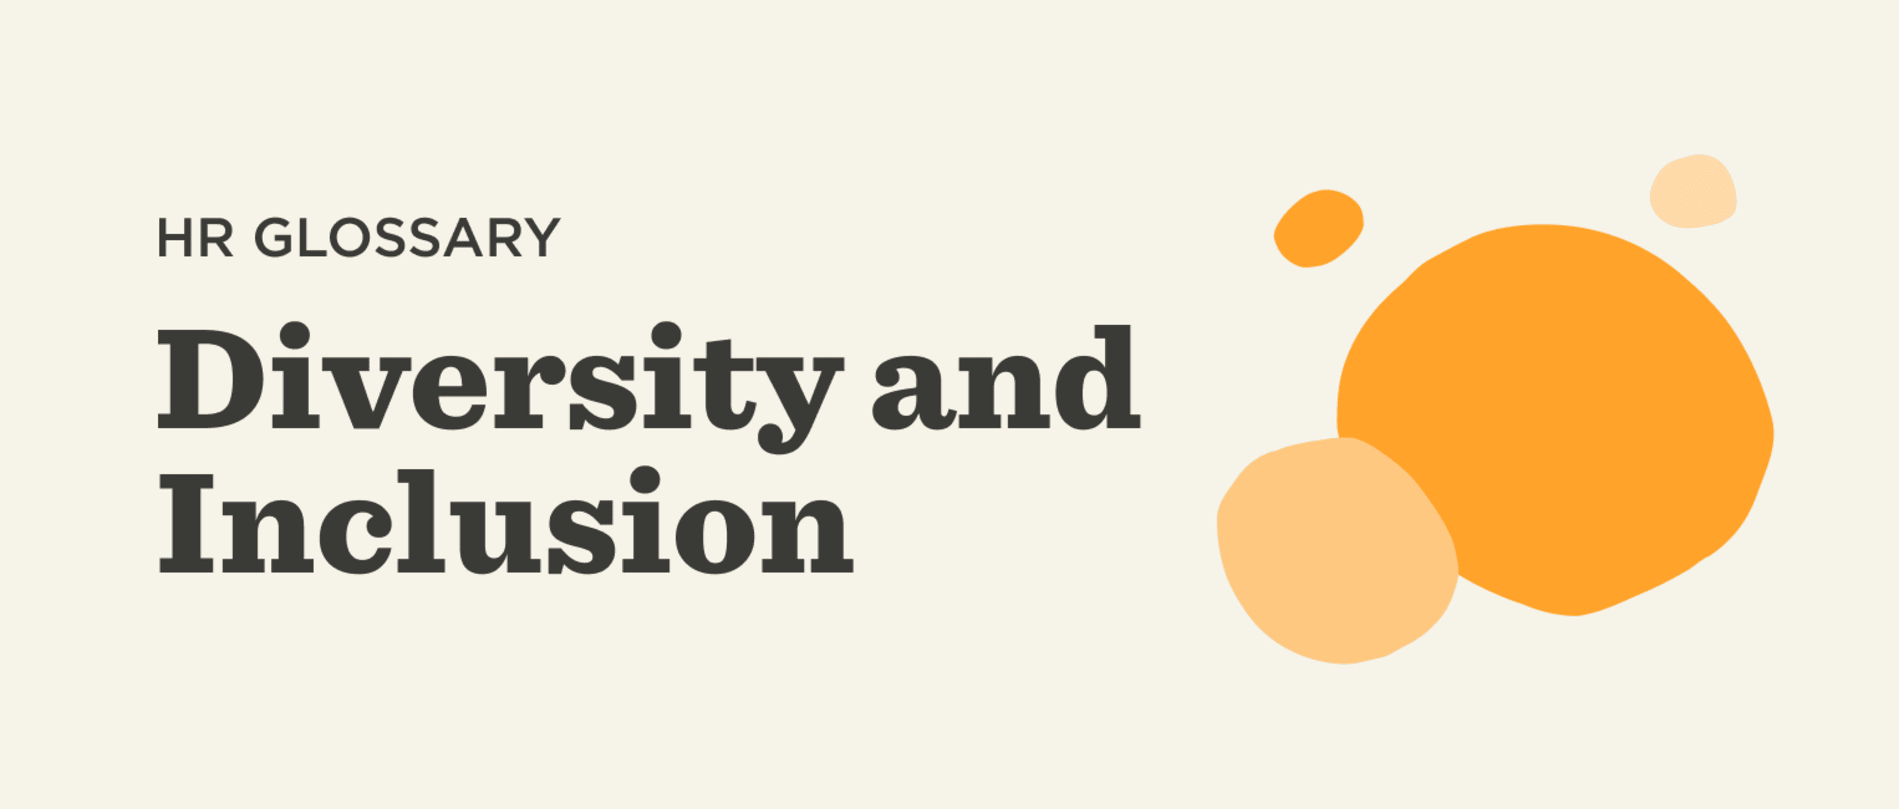 Diversity-and-Inclusion-Glossary-banner